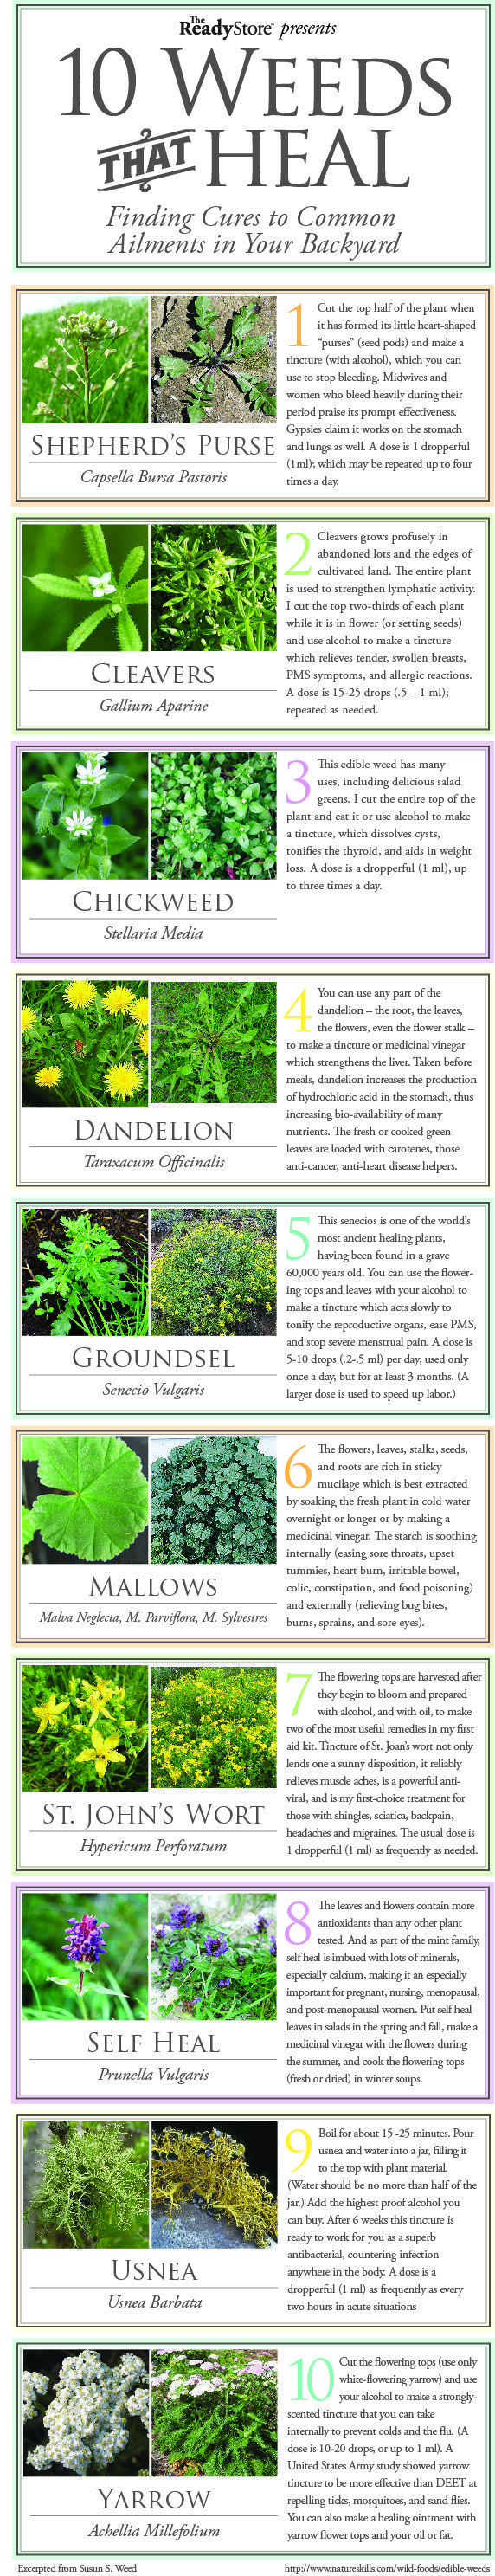 10 Weeds that Heal | Weeds you can find in your backyard you may not've known can heal. #SurvivalLife www.SurvivalLife.com